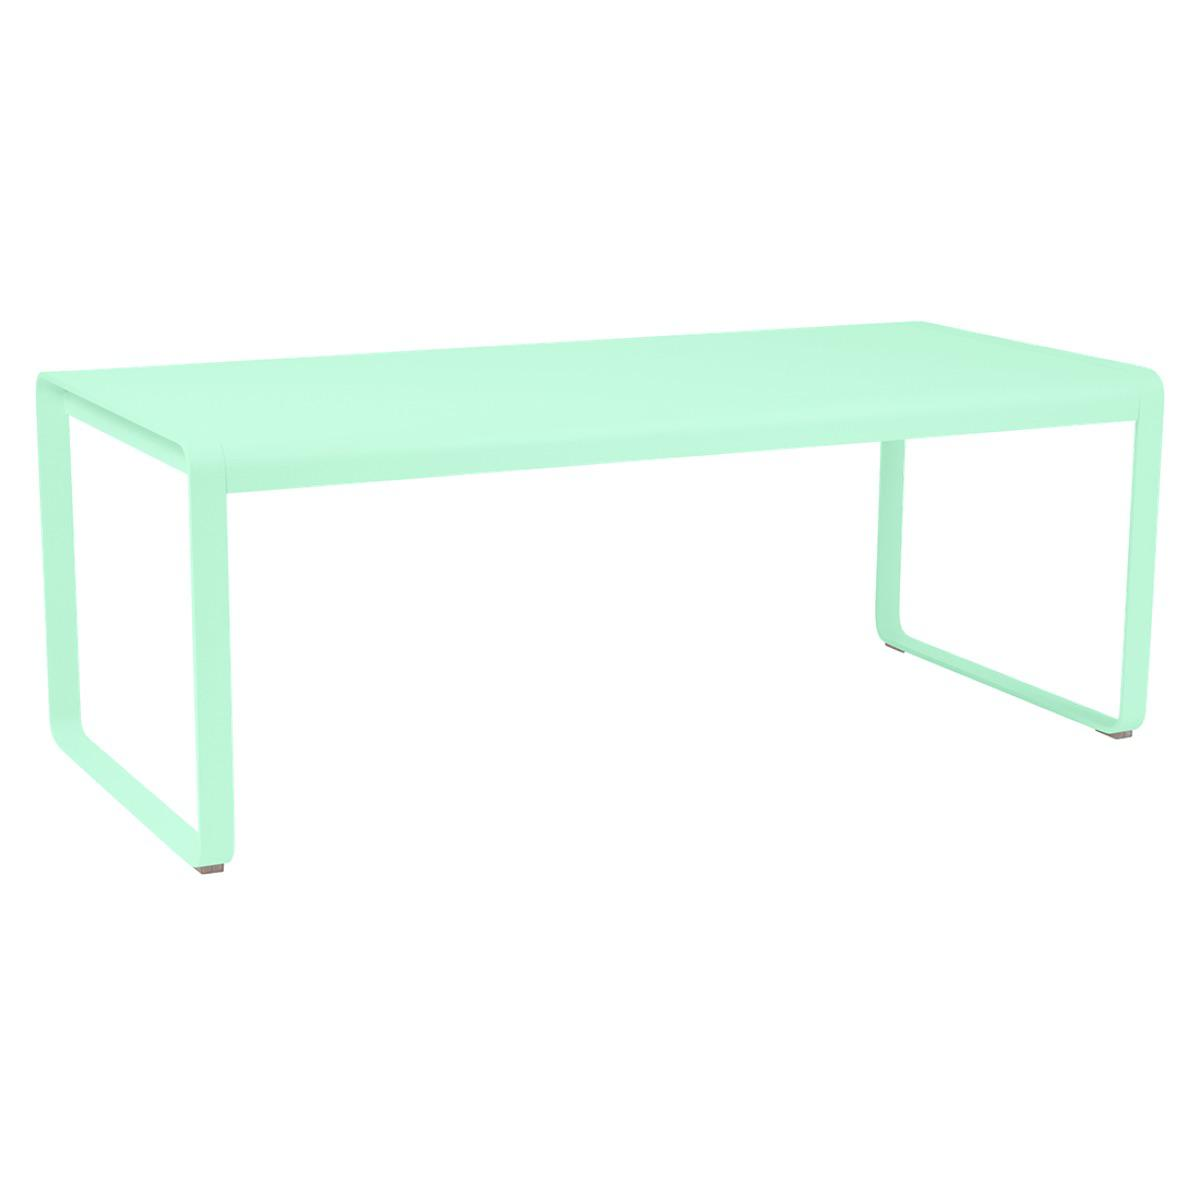 Table de jardin 196x90cm BELLEVIE Fermob vert opaline